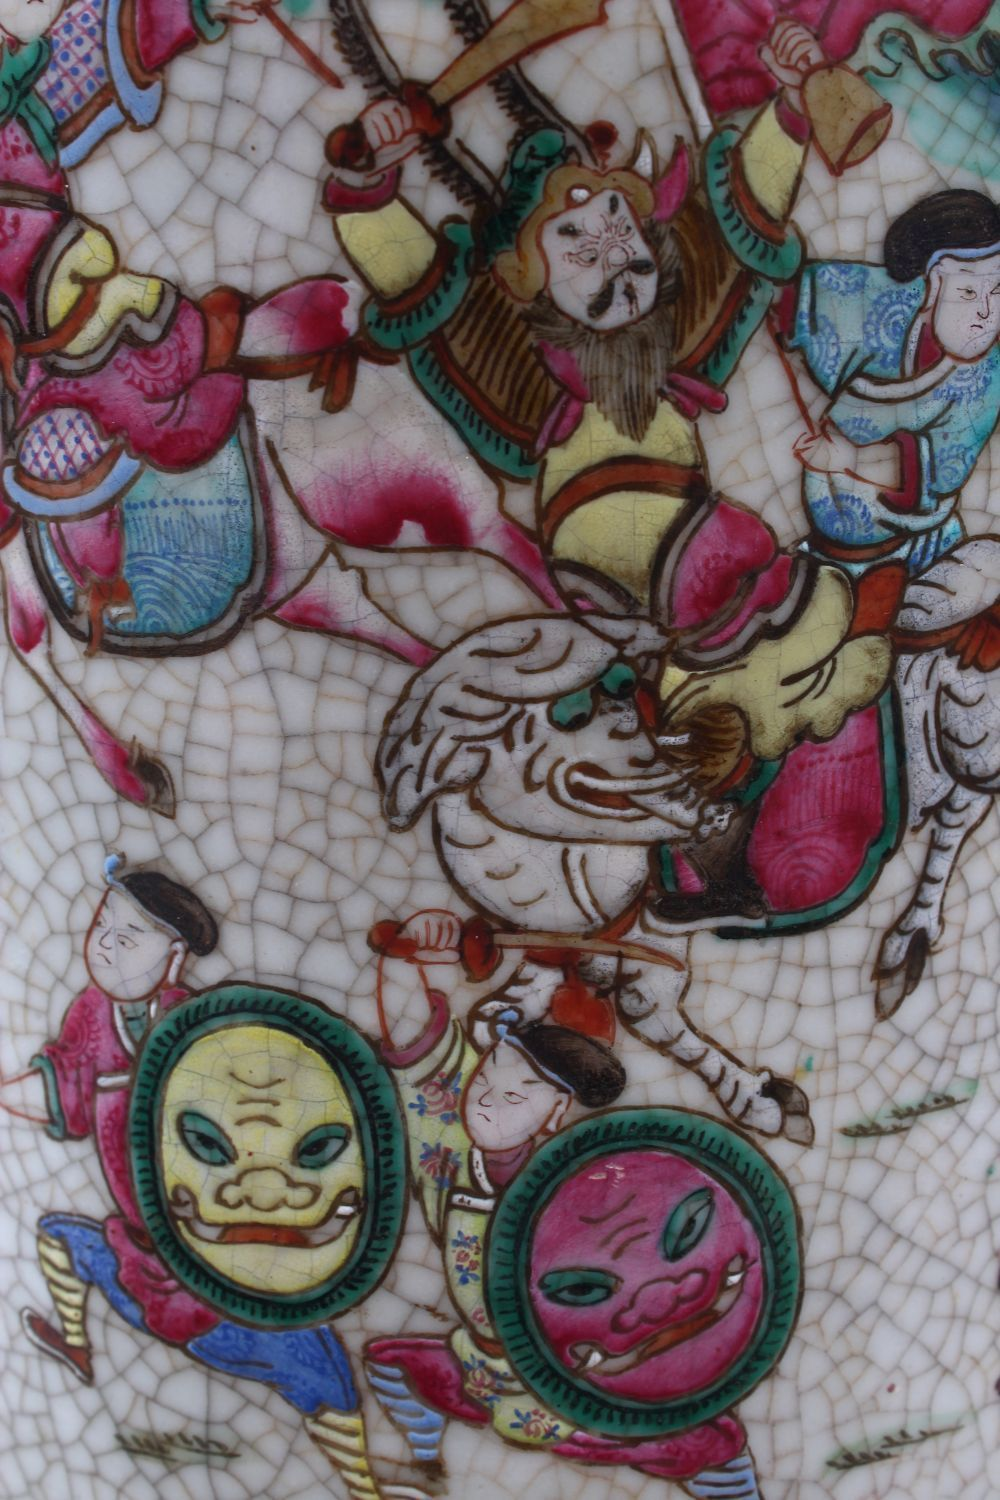 A 19TH CENTURY CHINESE FAMILLE ROSE CRACKLE GLAZED PORCELAIN VASE, painted with a battle scene, - Image 5 of 8